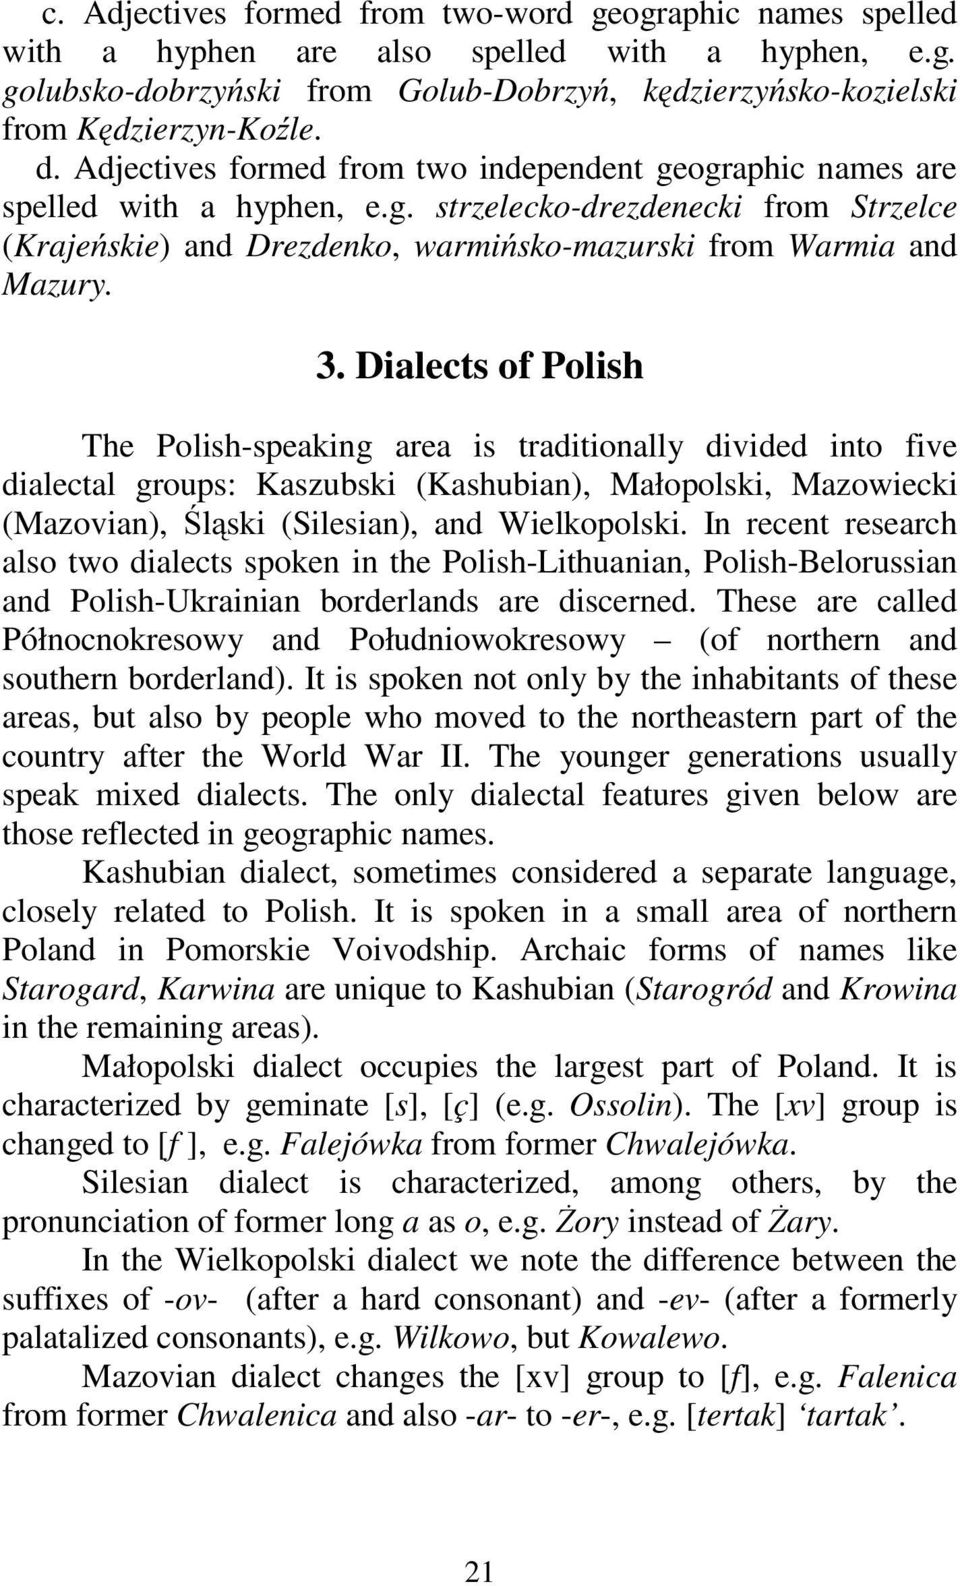 Dialects of Polish The Polish-speaking area is traditionally divided into five dialectal groups: Kaszubski (Kashubian), Małopolski, Mazowiecki (Mazovian), Śląski (Silesian), and Wielkopolski.